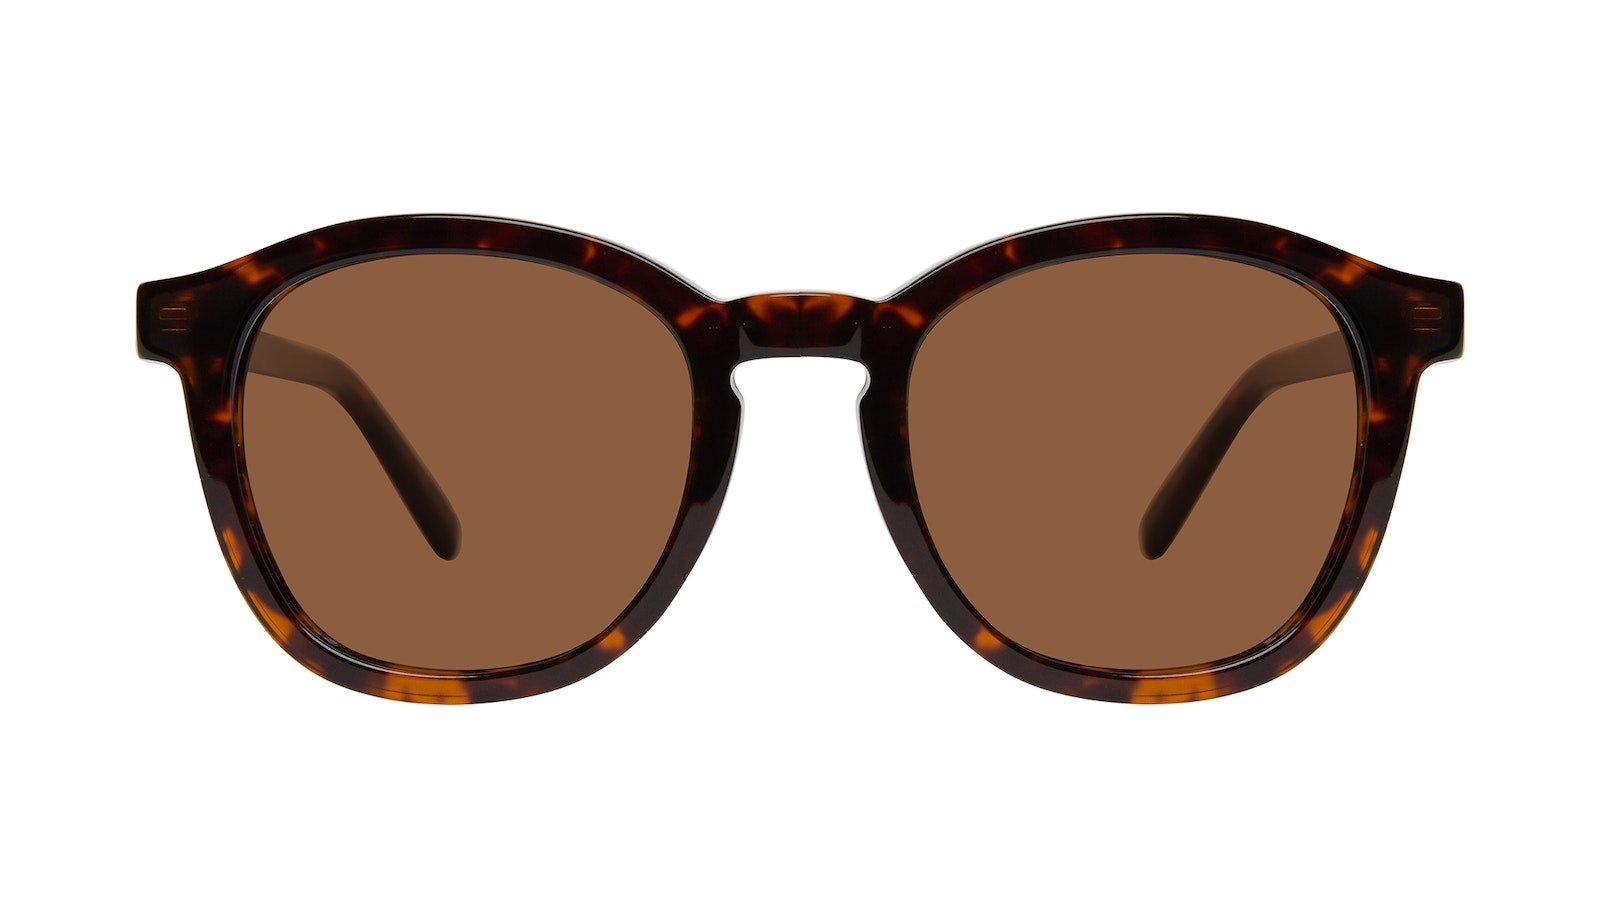 Affordable Fashion Glasses Round Sunglasses Men Script Brindle